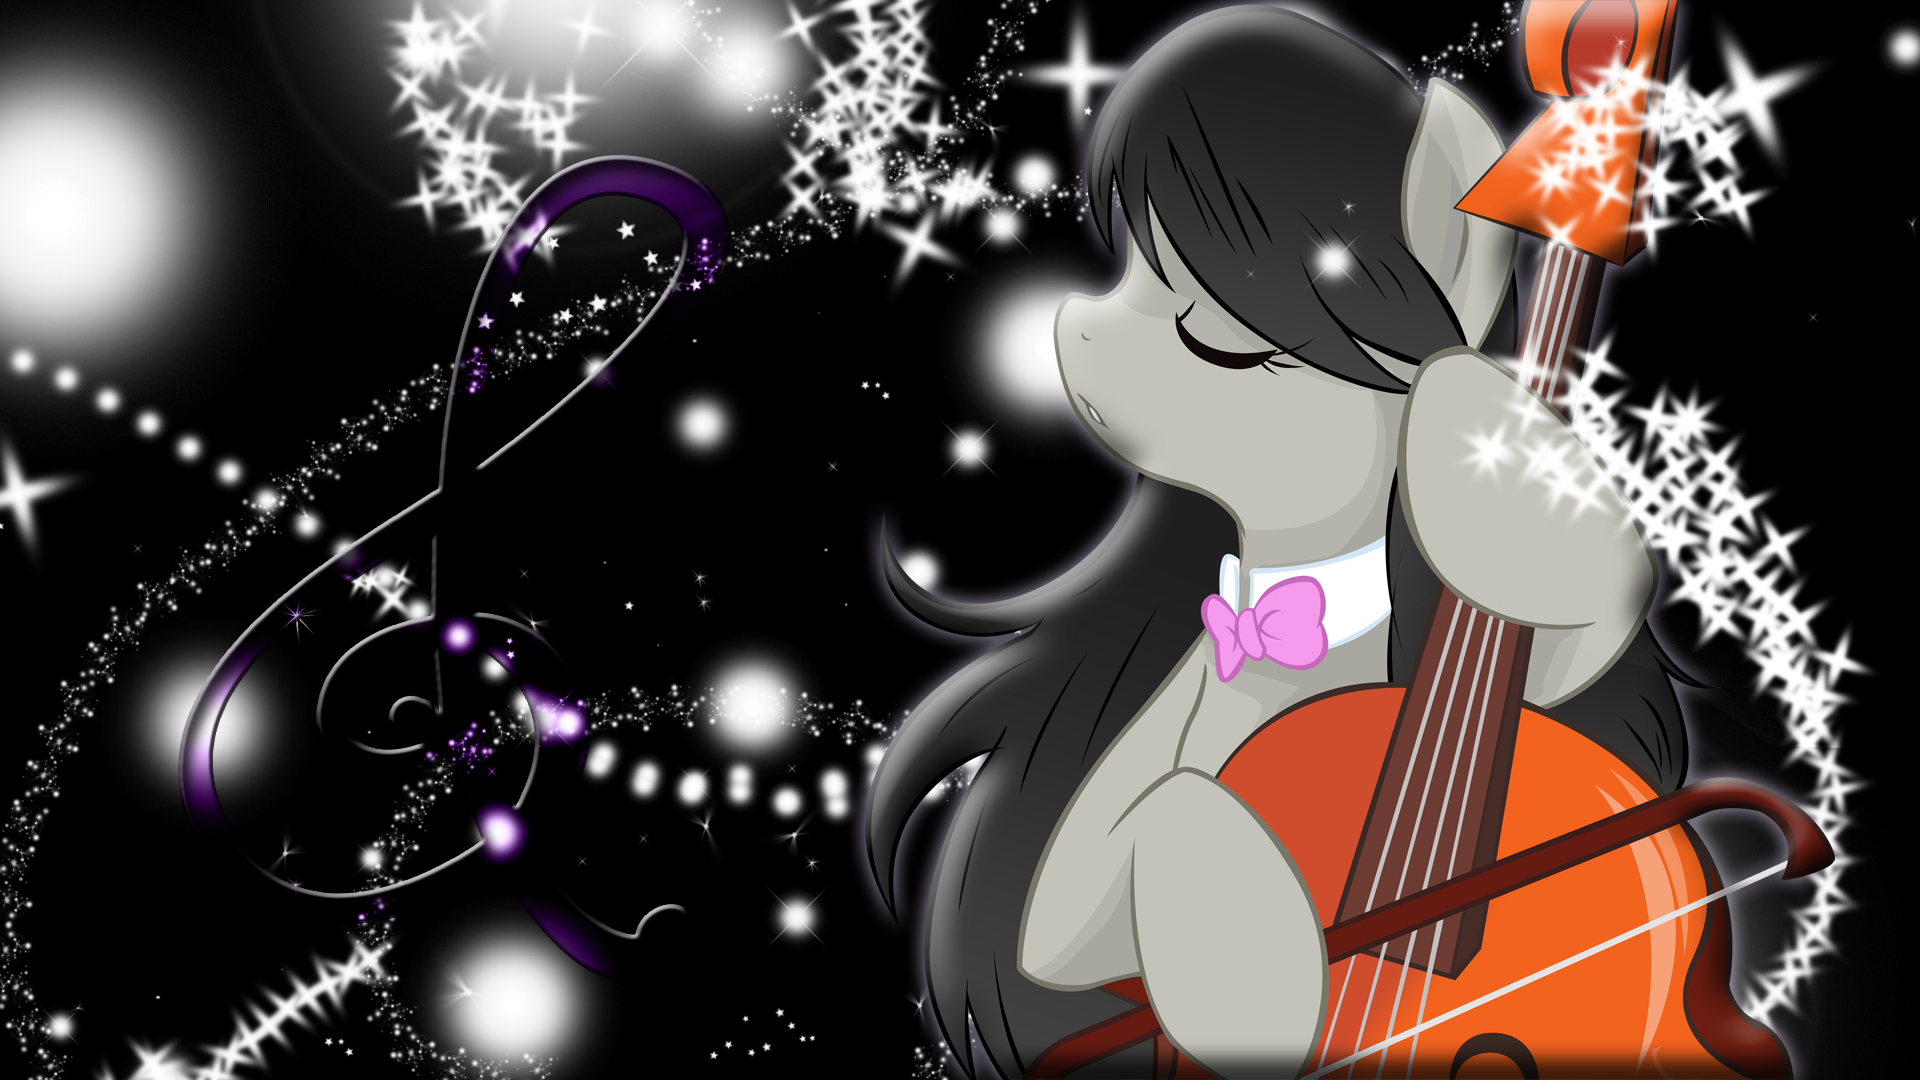 Octavia - Wallpaper #1 by NightmareDashy